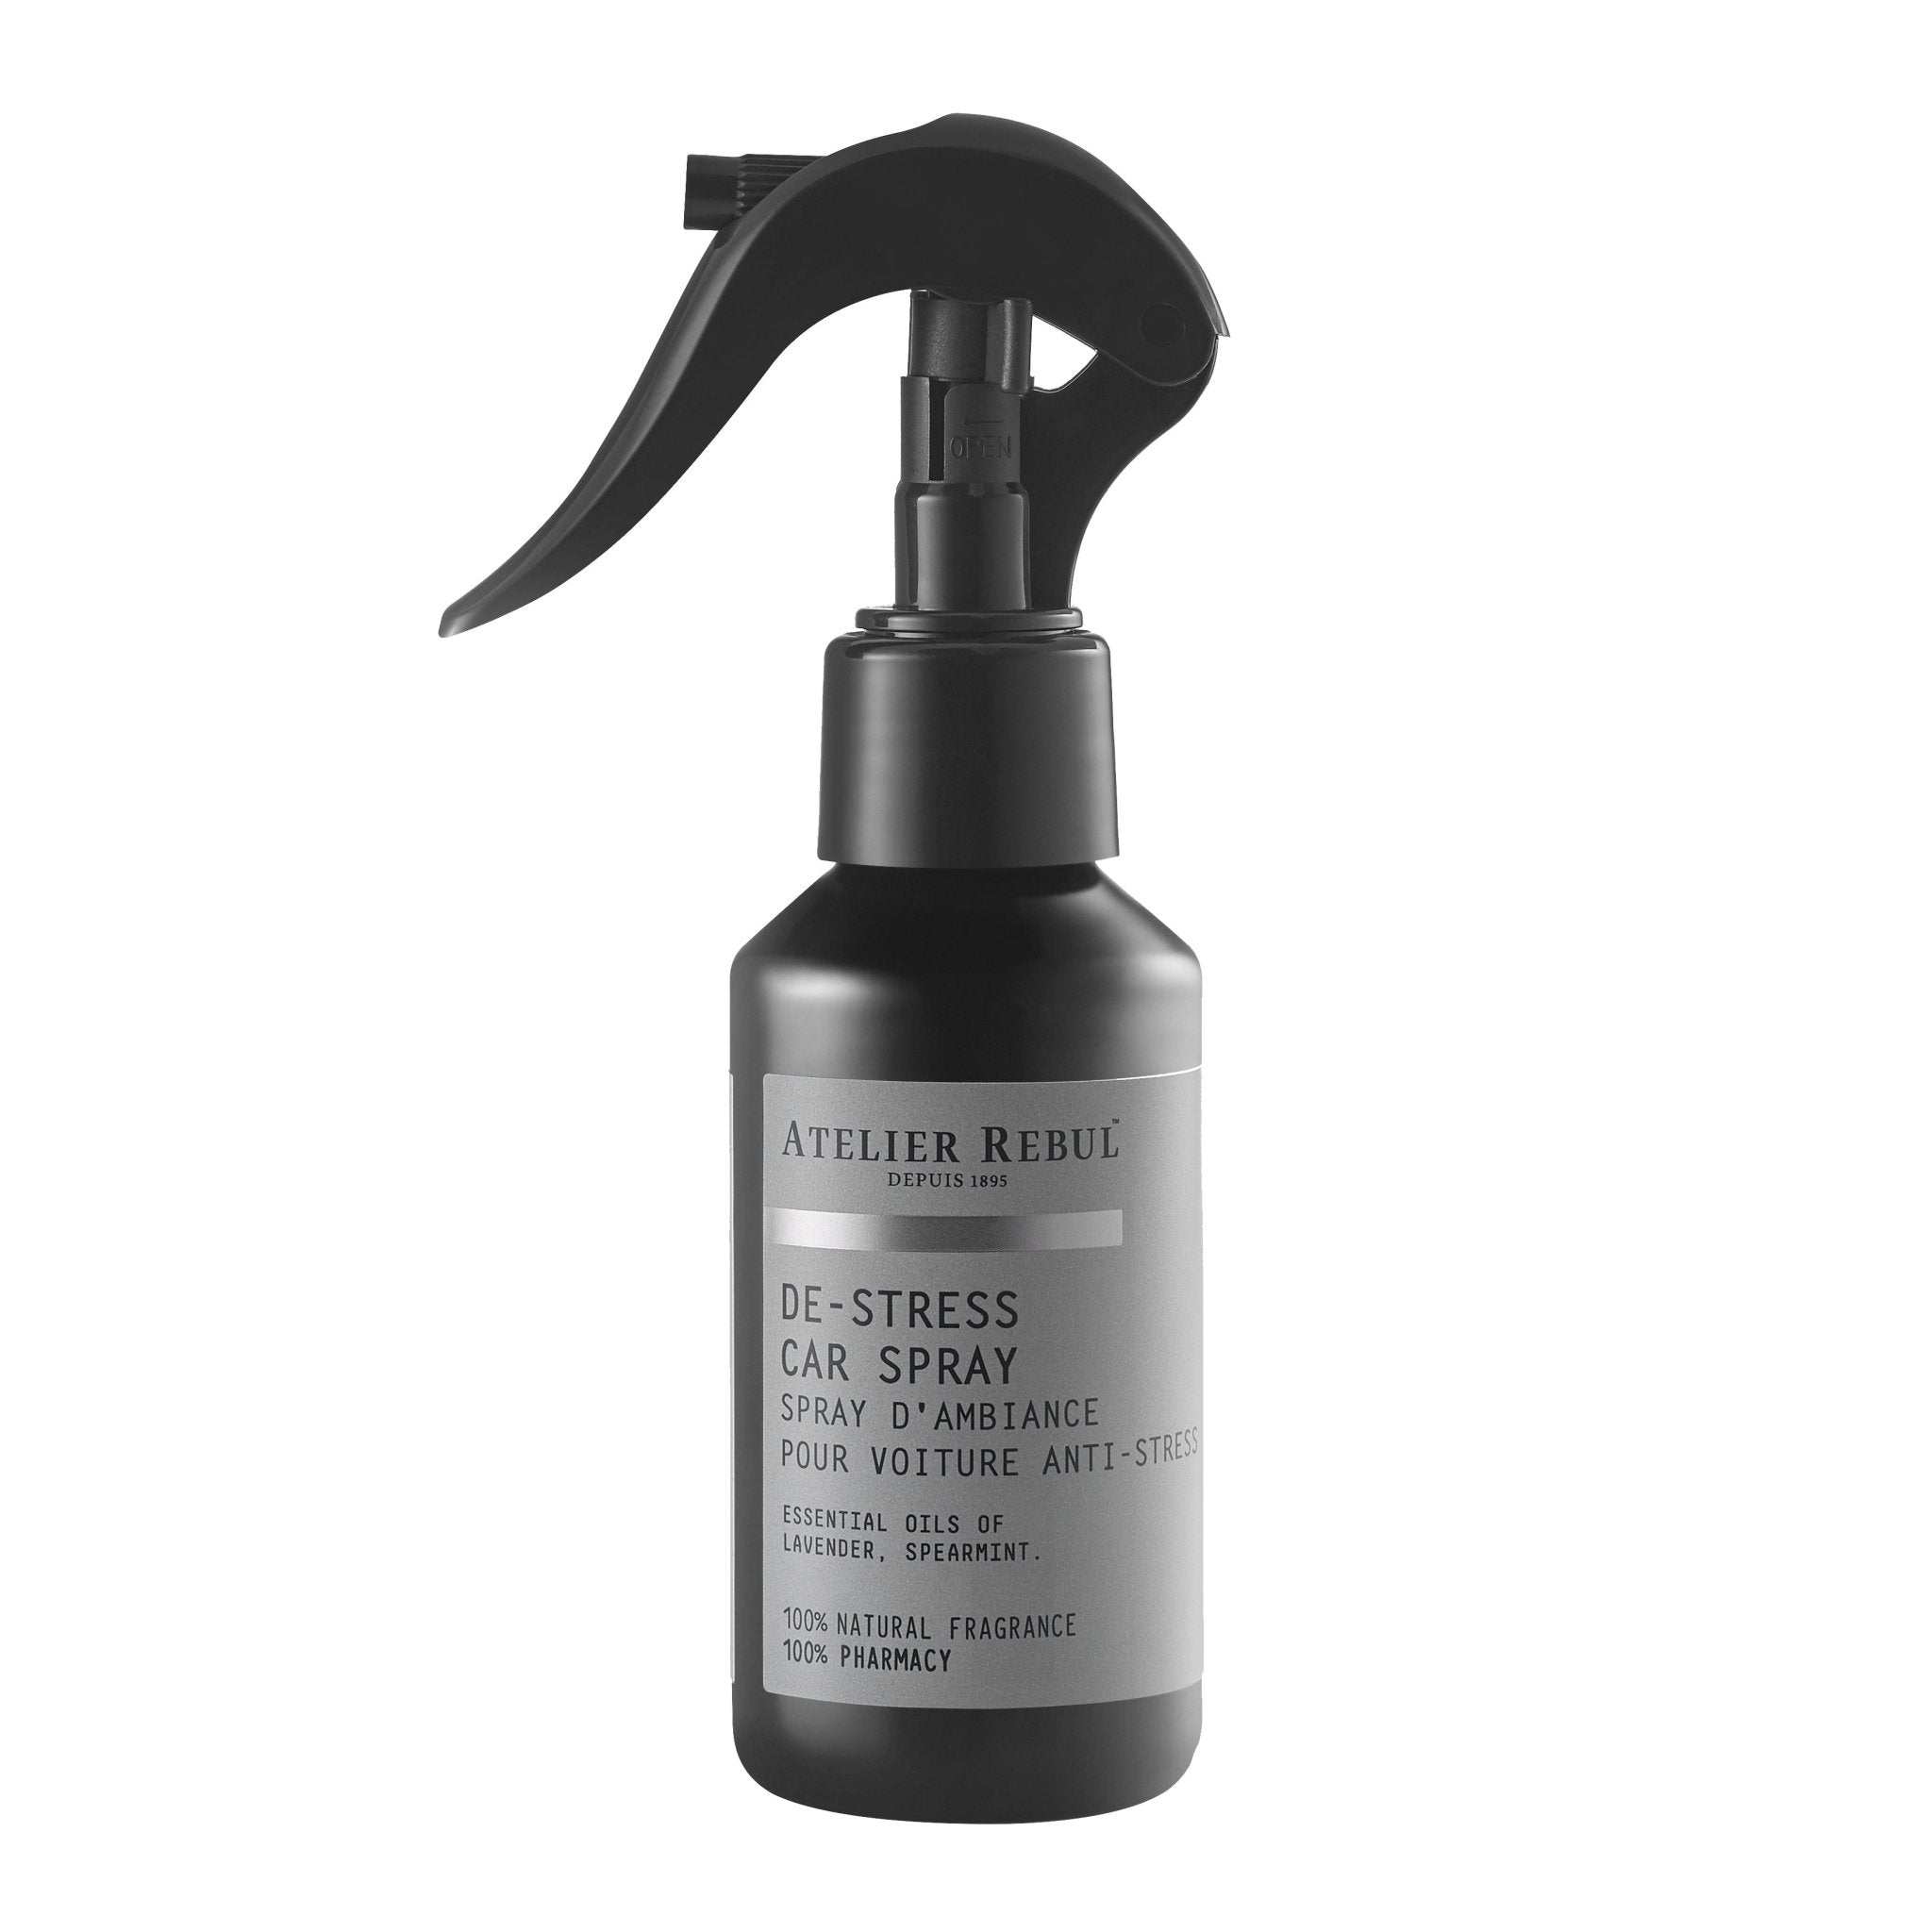 De-Stress Car Spray 100ml - Atelier Rebul